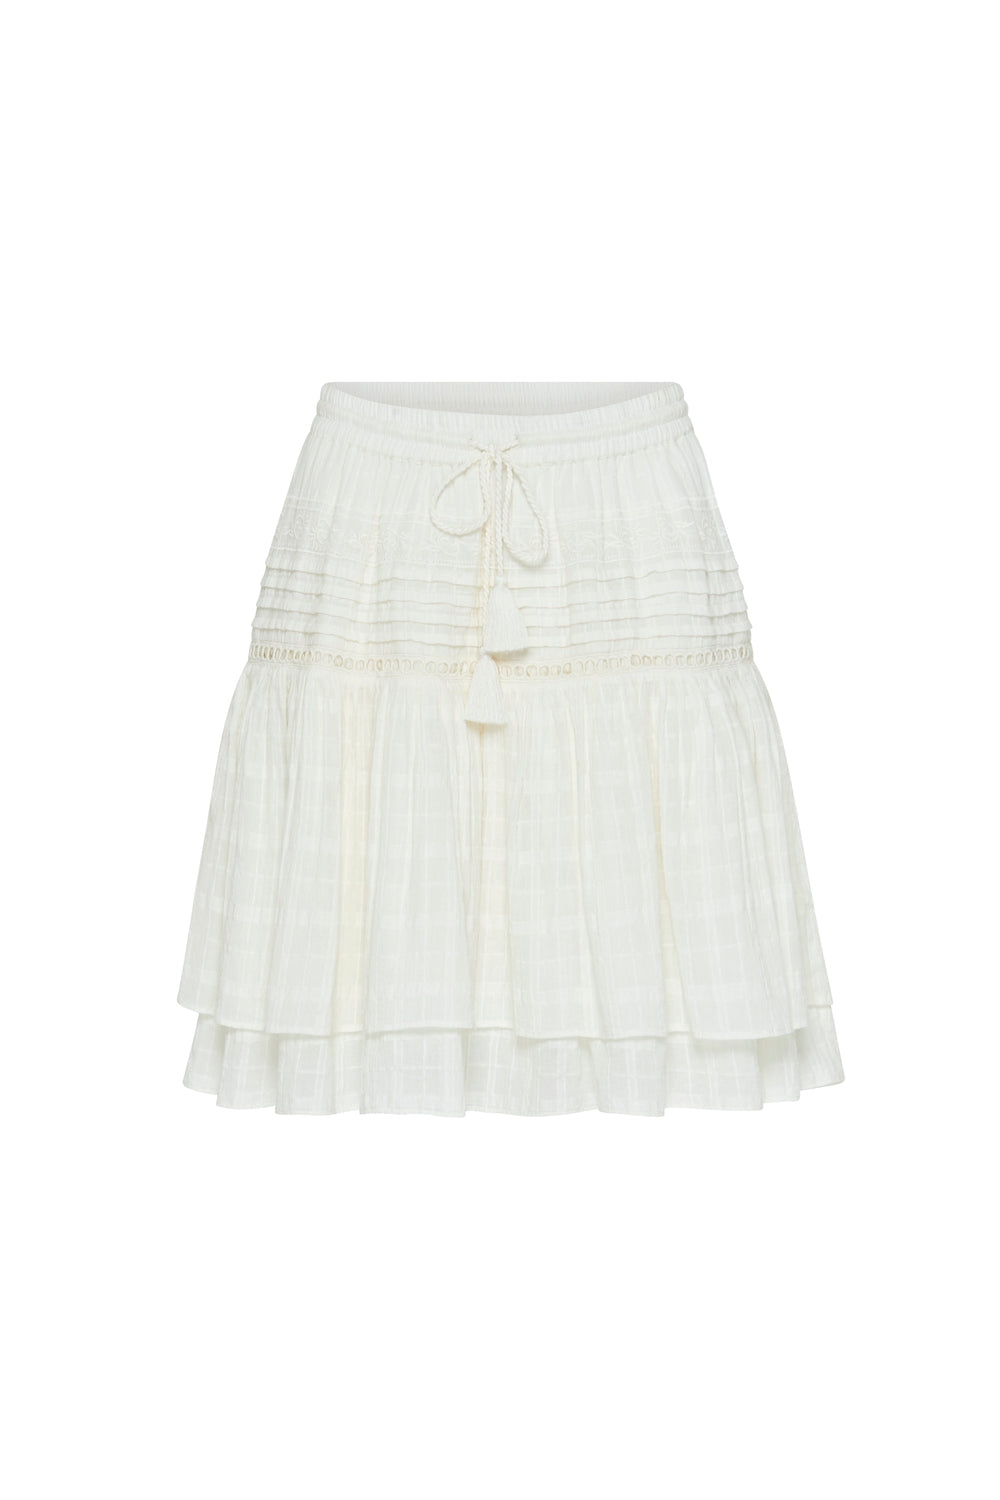 Ava Mini Skirt in Snowdrop